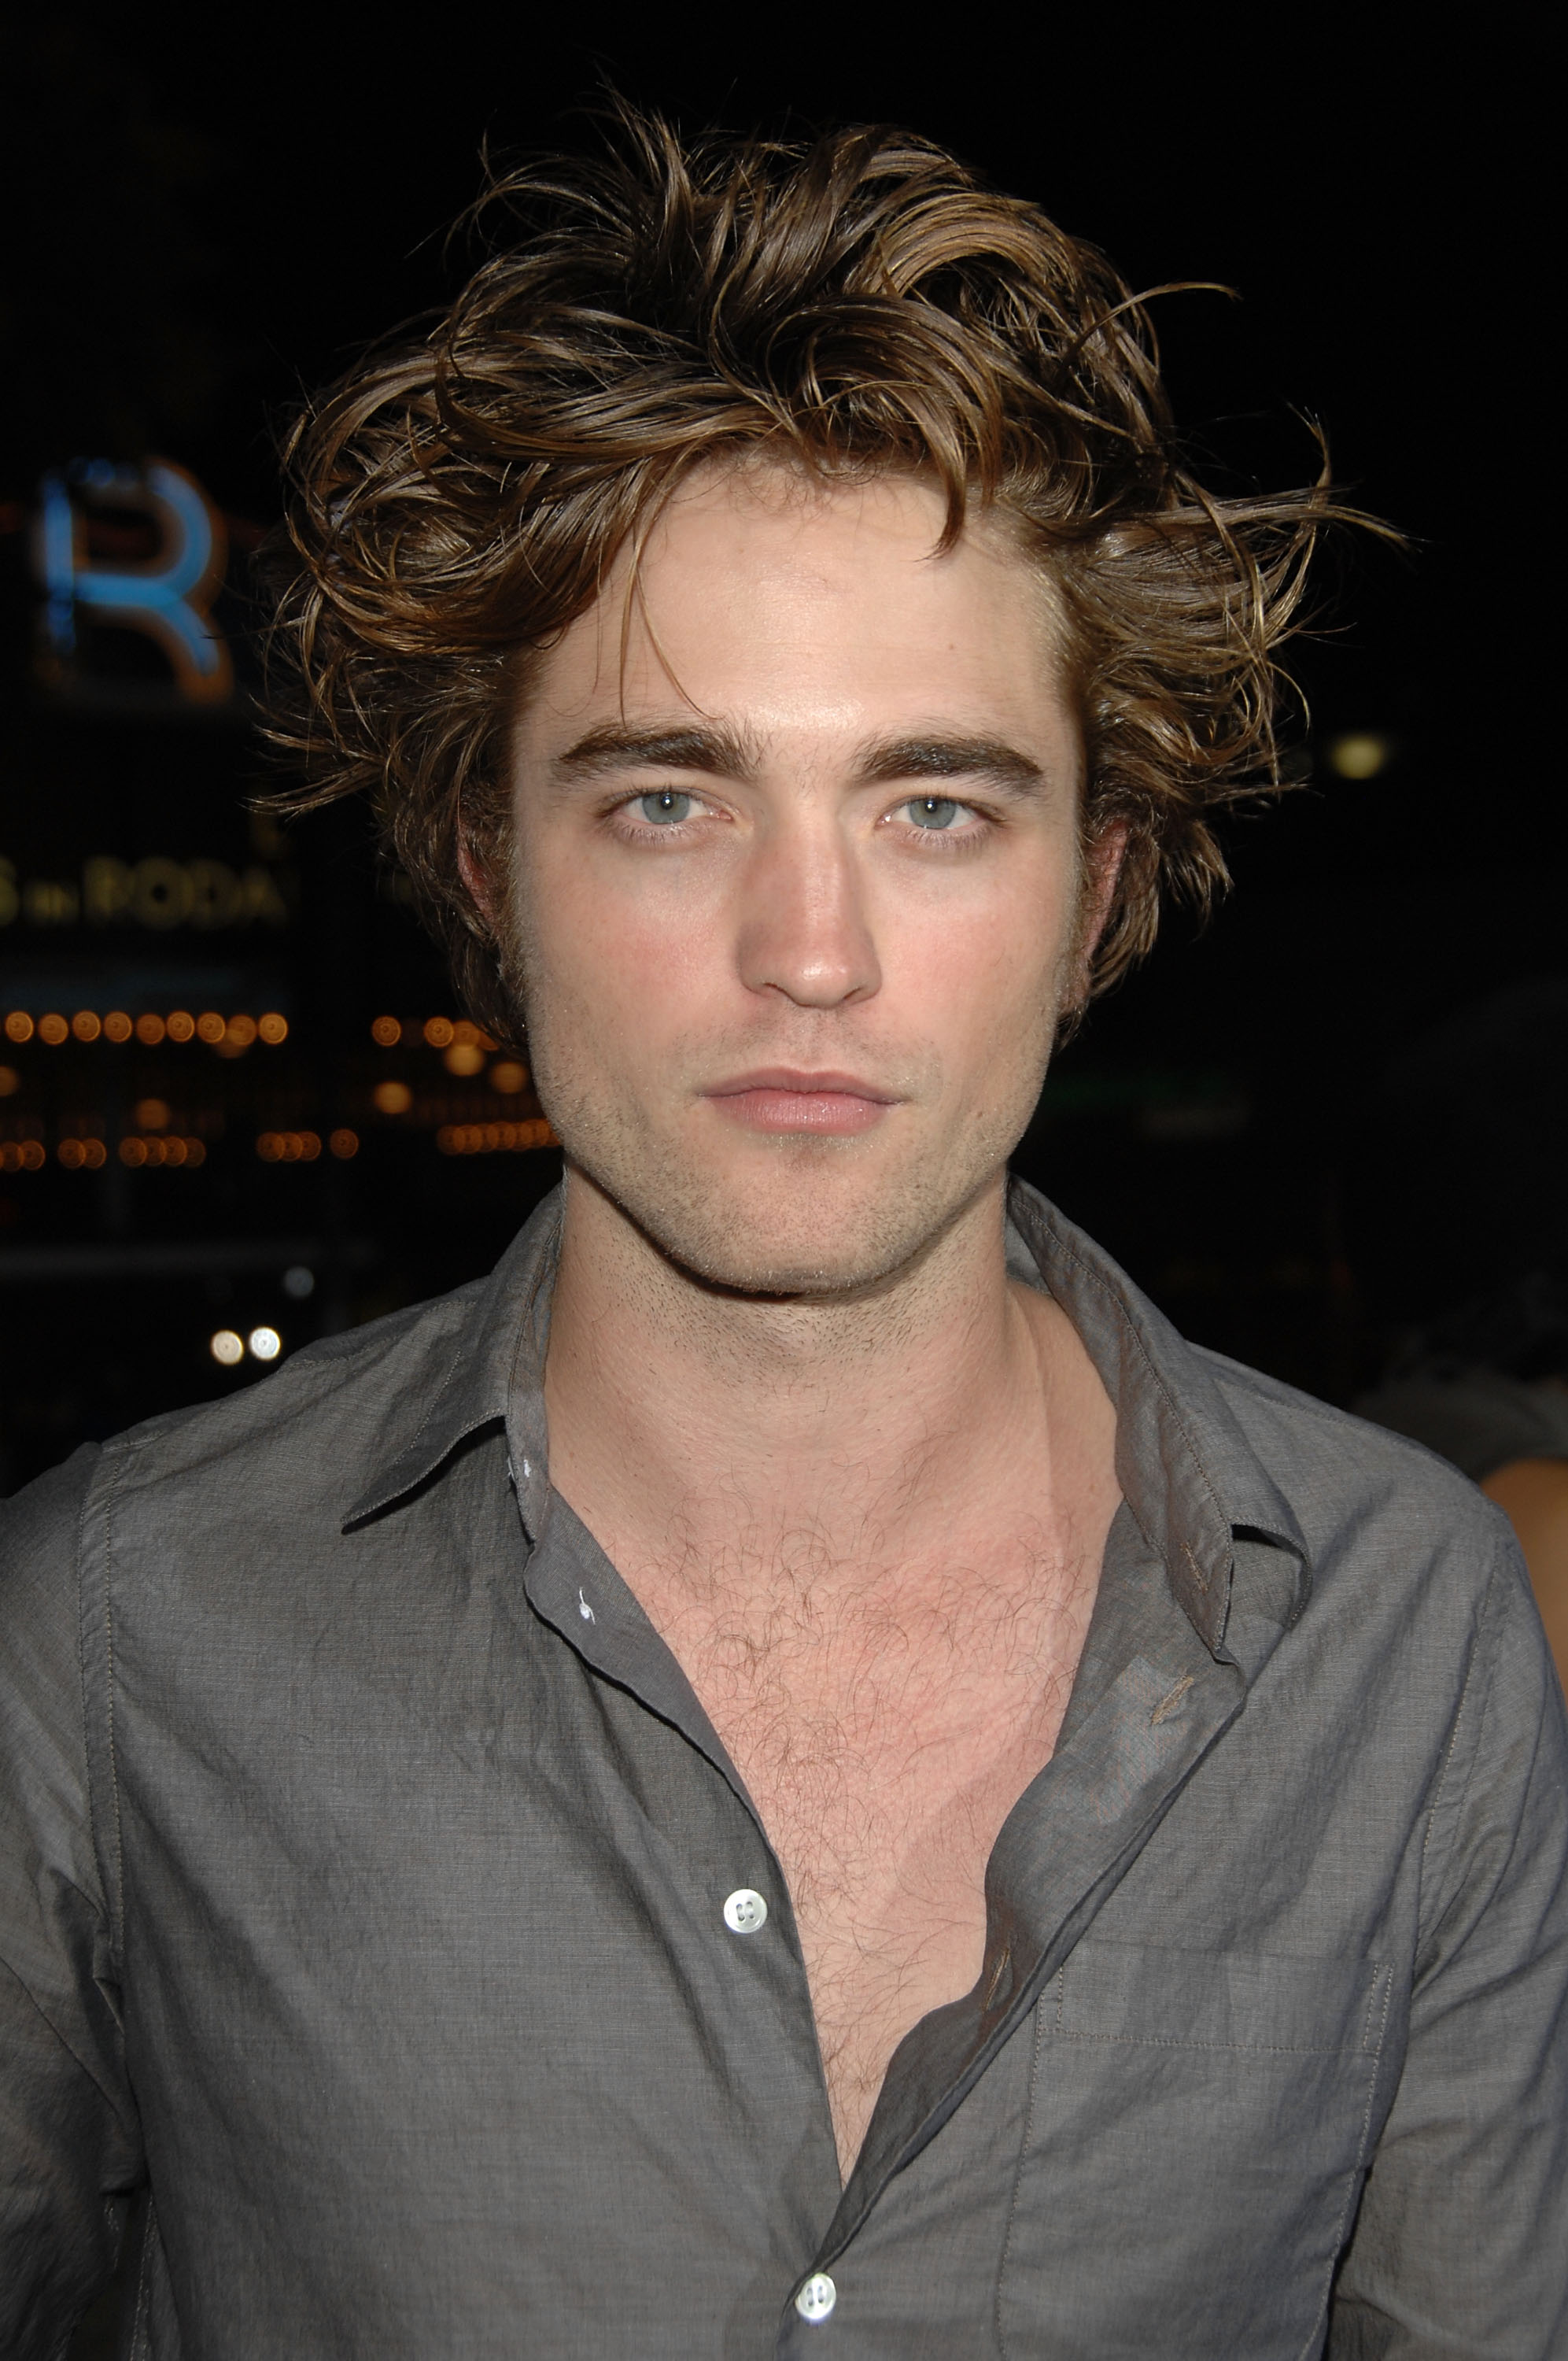 Pattinson Robert hairstyles pictures new photo